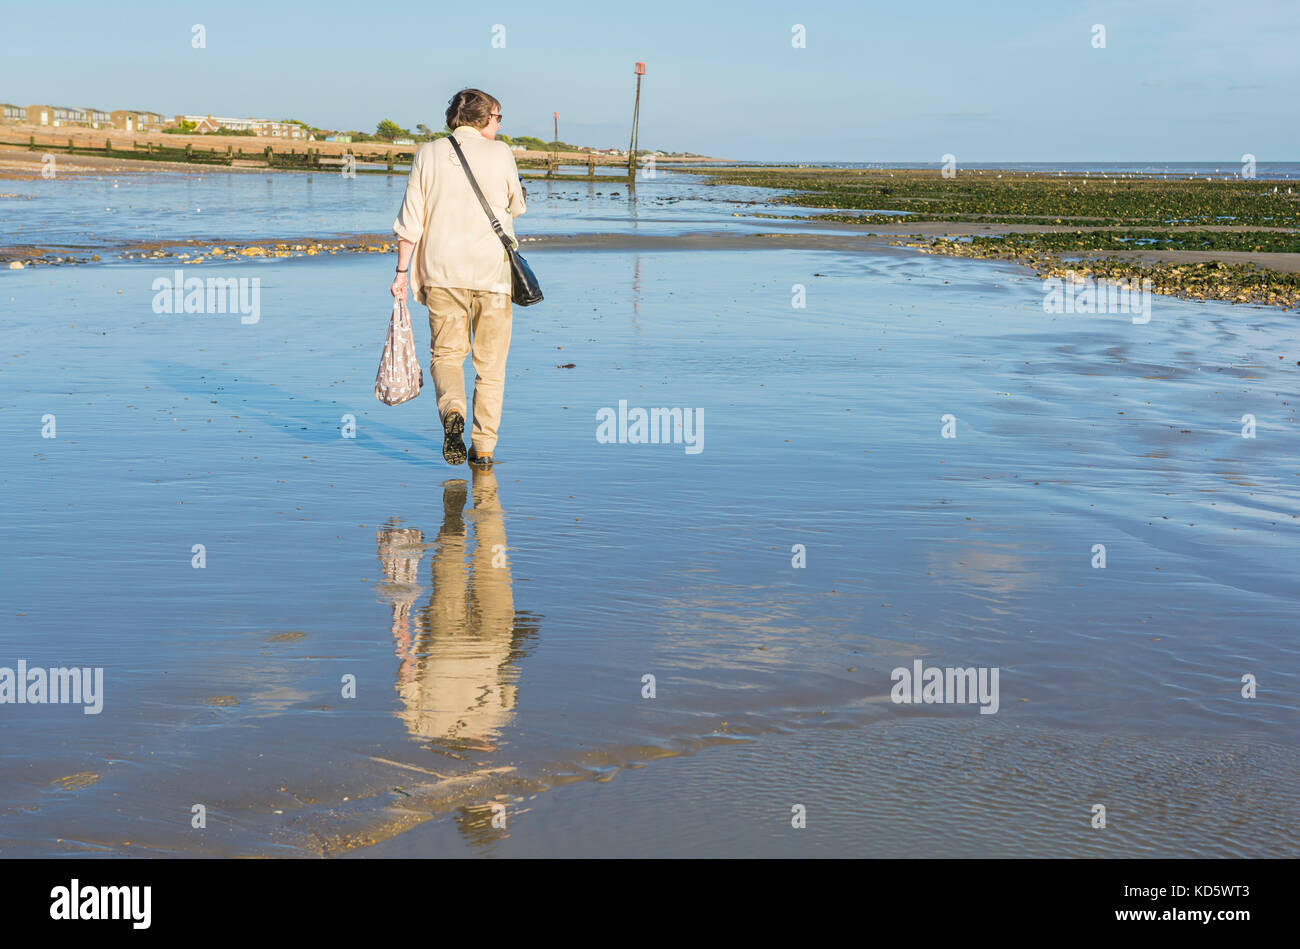 Woman waking on a beach at low tide with a reflection of her in the wet sand. - Stock Image